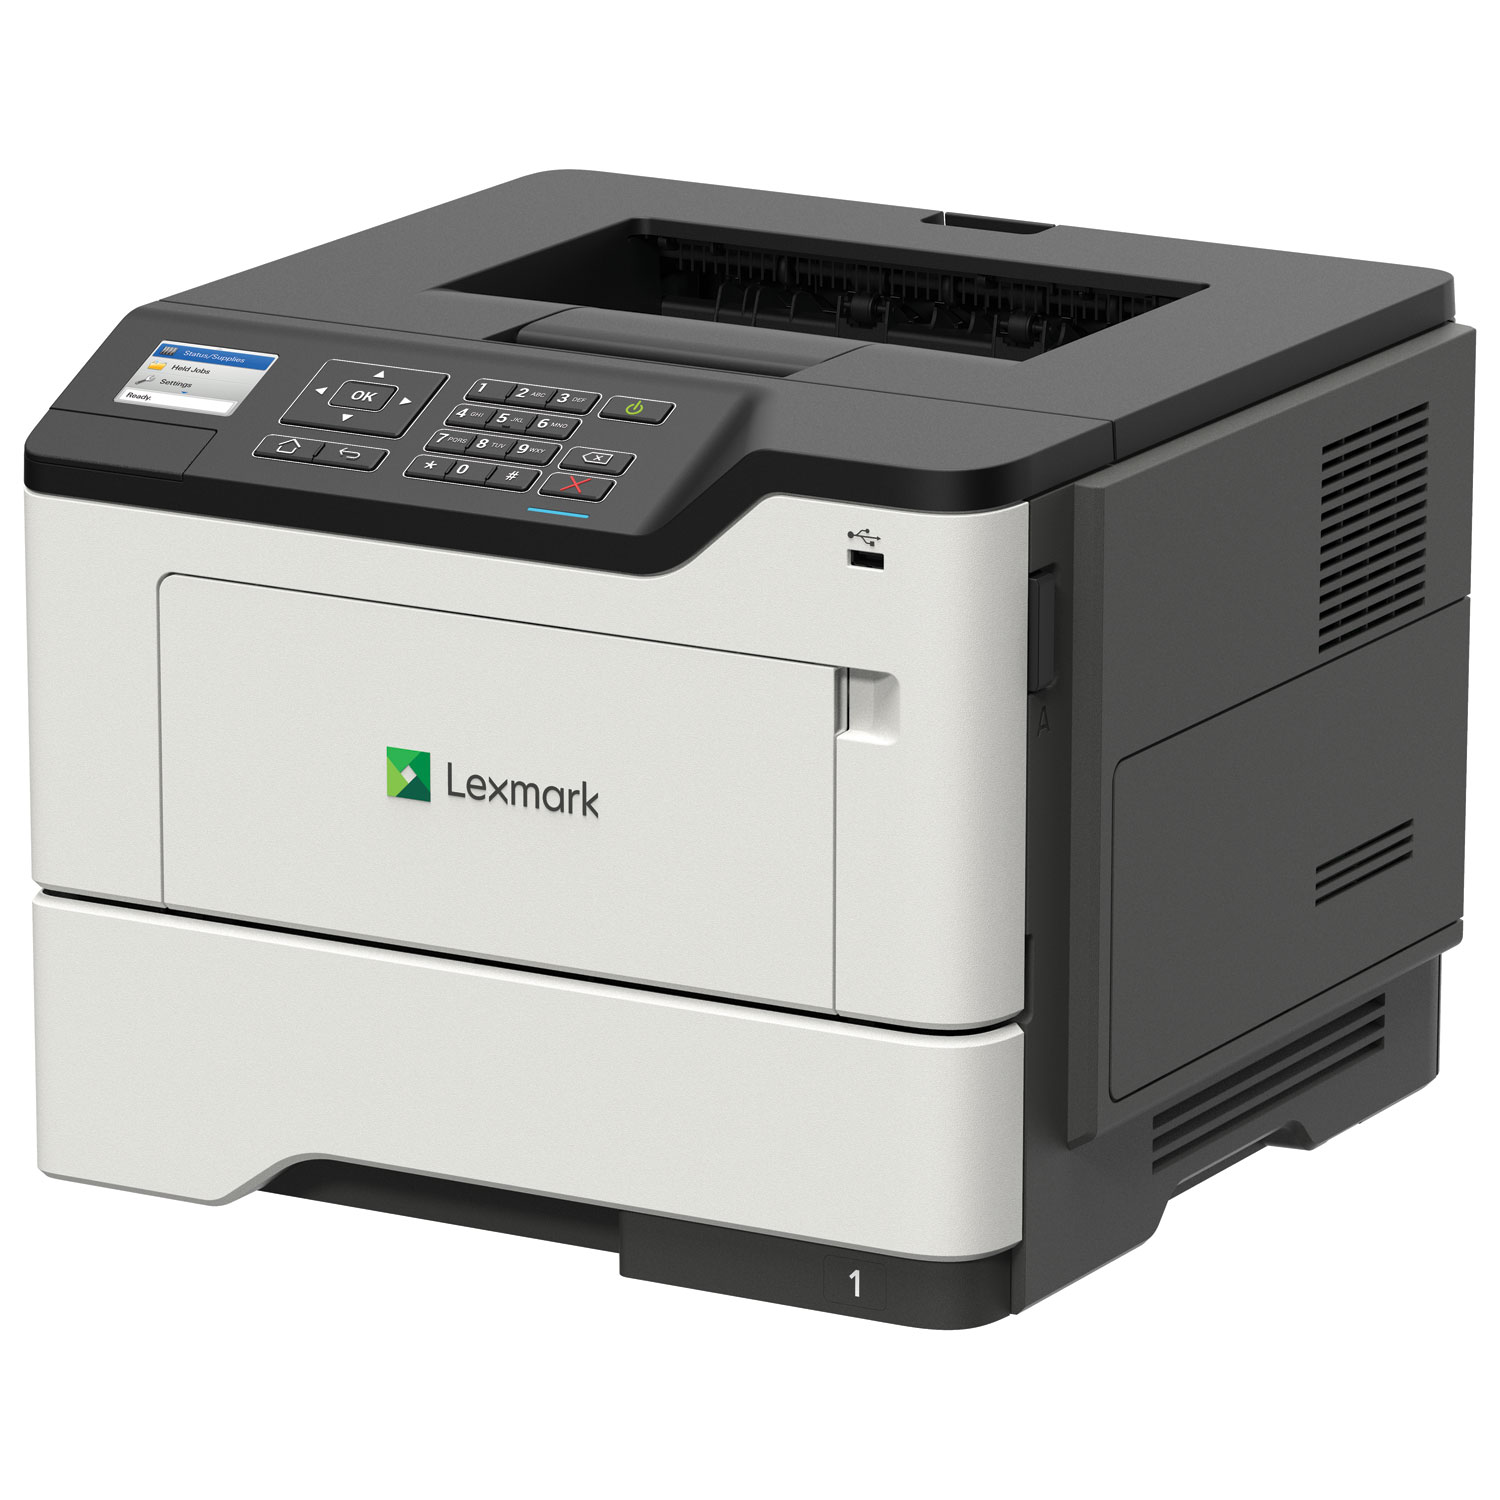 B2650dw Wireless Laser Printer